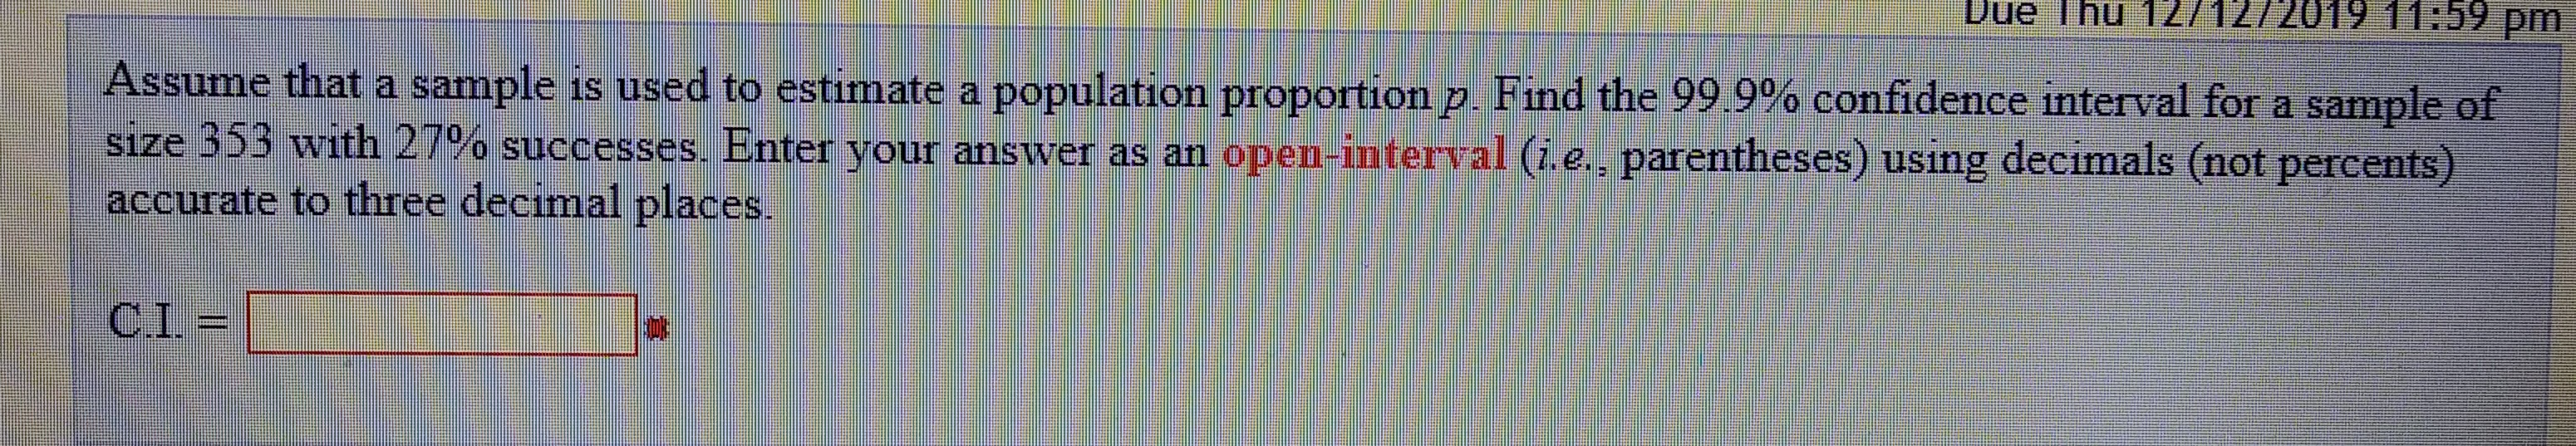 Due Thu 12/1272019 11:59 pm Assume that a sample is used to estimate a population proportion p. Find the 99 9% confidence interval for a sample of size 353 with 27% successes. Enter your answer as an open-interval (i.e., parentheses) using decimals (not percents) accurate to three decimal places. CI=